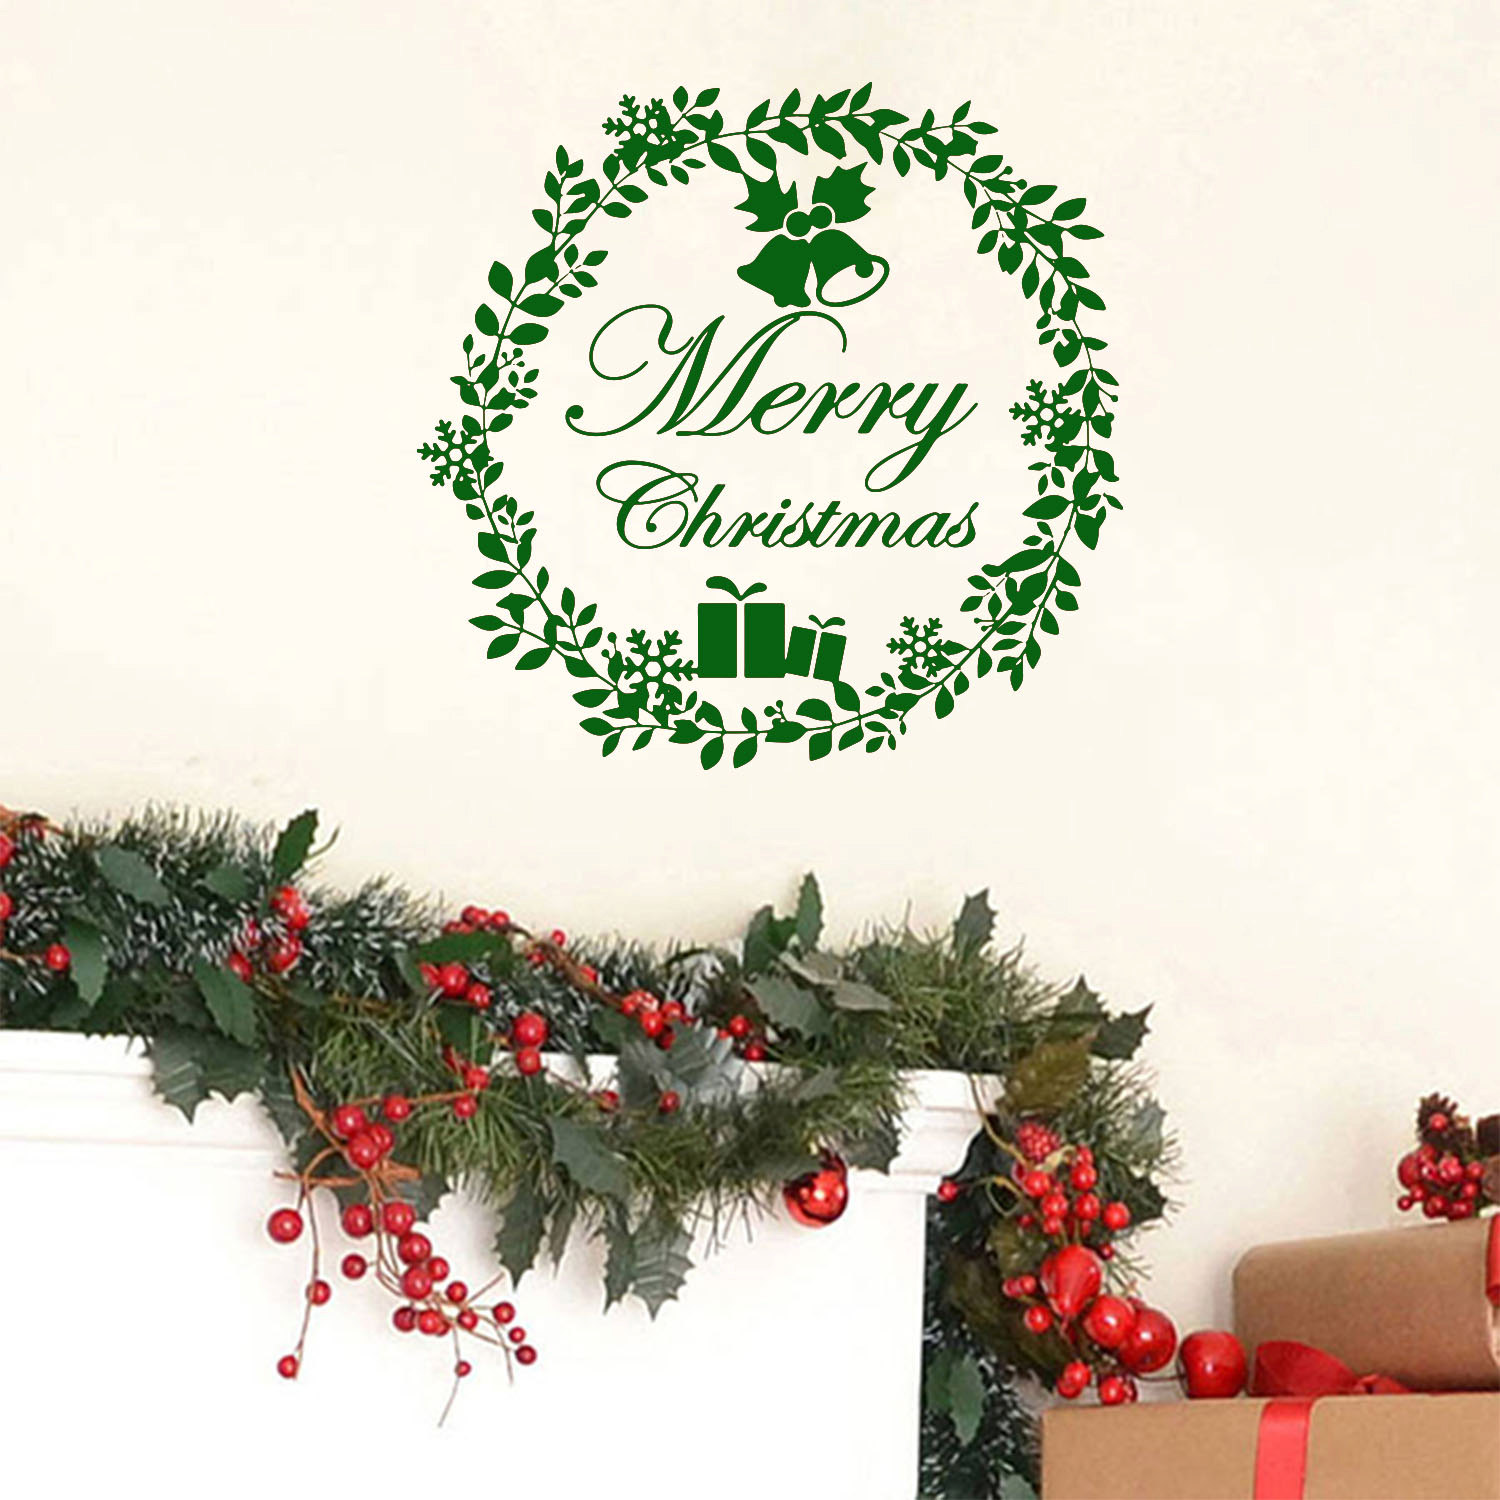 Merry christmas wall decal wall decals wall stickers for kids merry christmas wall decal wall decals wall stickers for kids ireland amipublicfo Choice Image